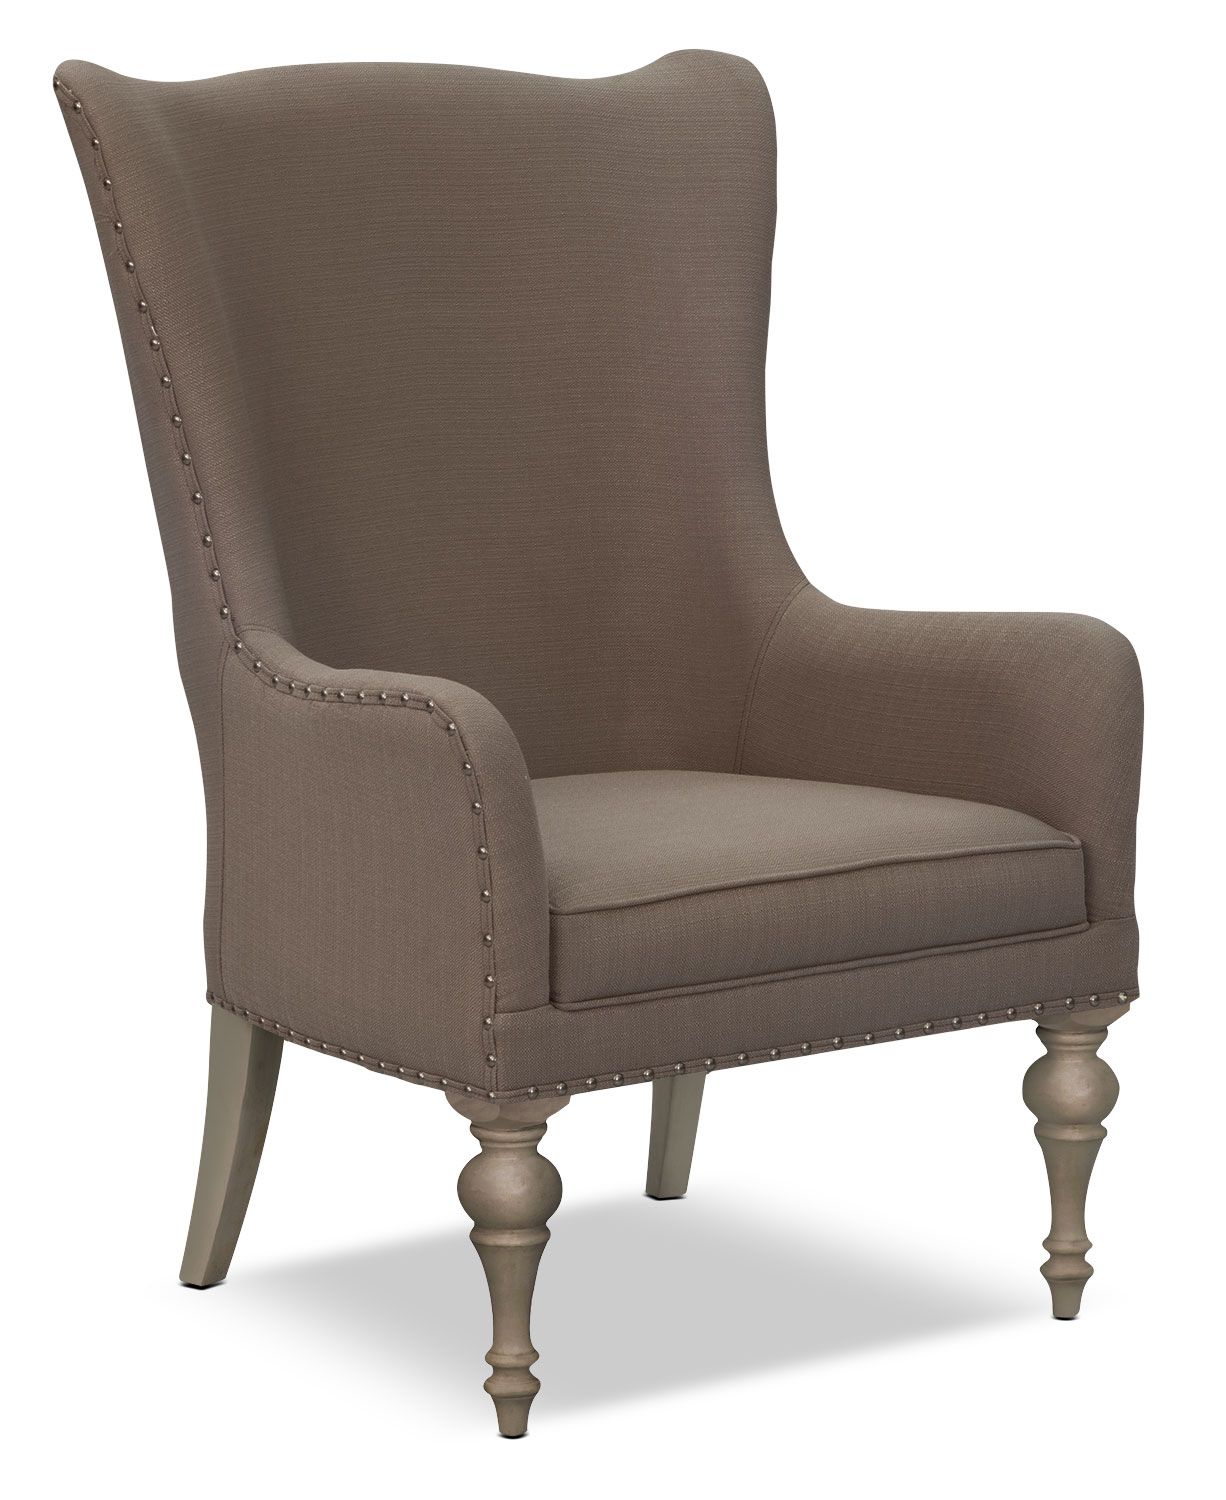 Dining Room Furniture - Hancock Park Arm Chair